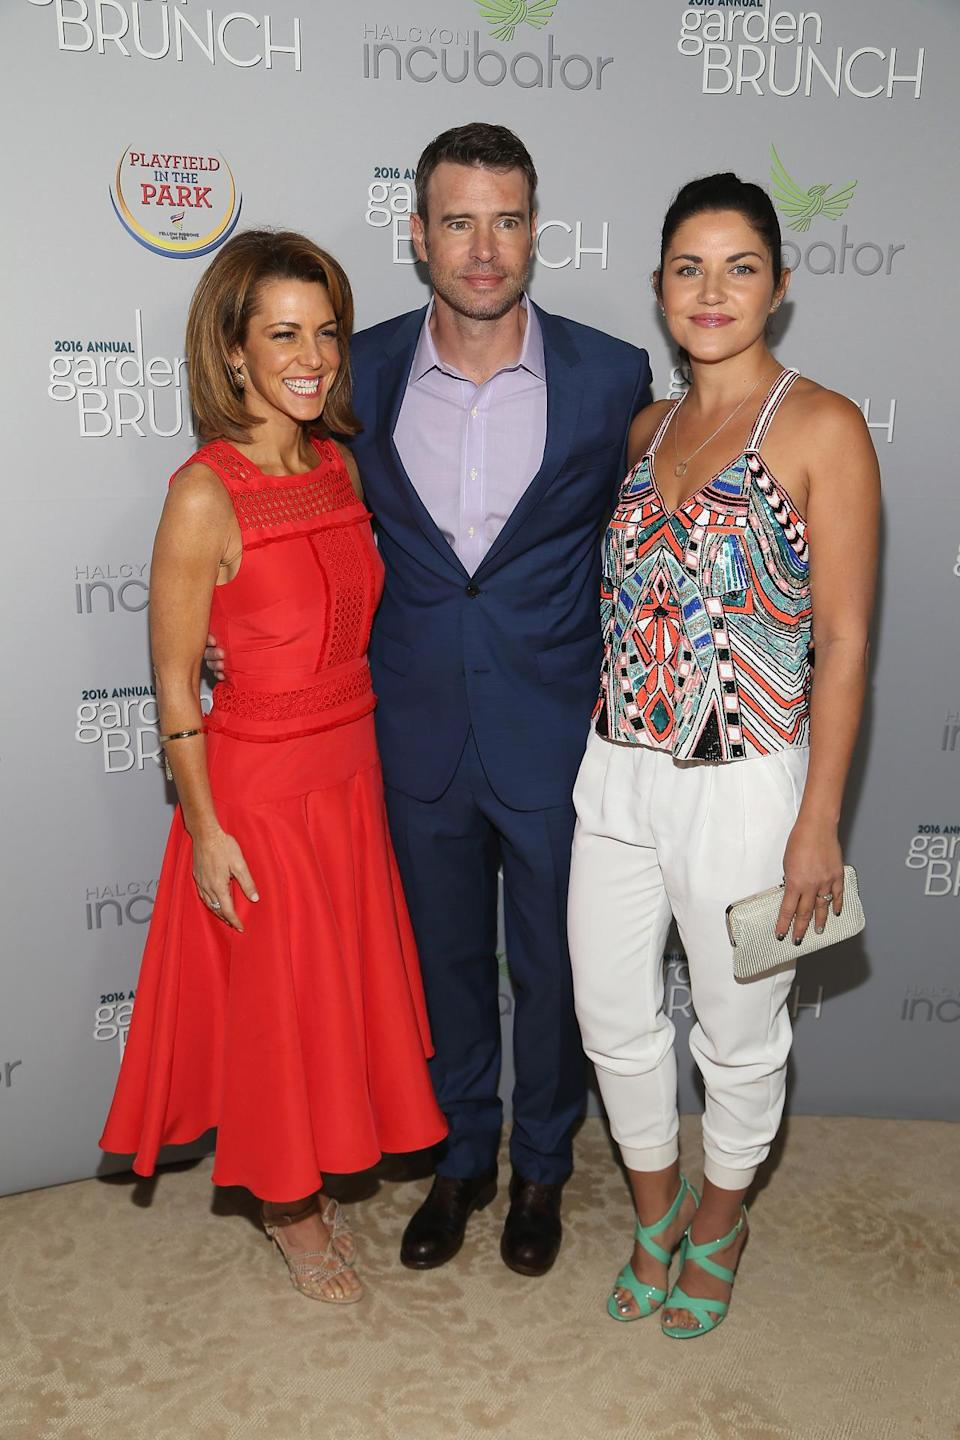 <p>Stephanie Ruhle, Scott Foley, and Marika Dominczyk attend the Garden Brunch prior to the 102nd White House Correspondents' Dinner at the Beall-Washington House, April 30. <i>(Photo: Paul Morigi/WireImage)</i></p>